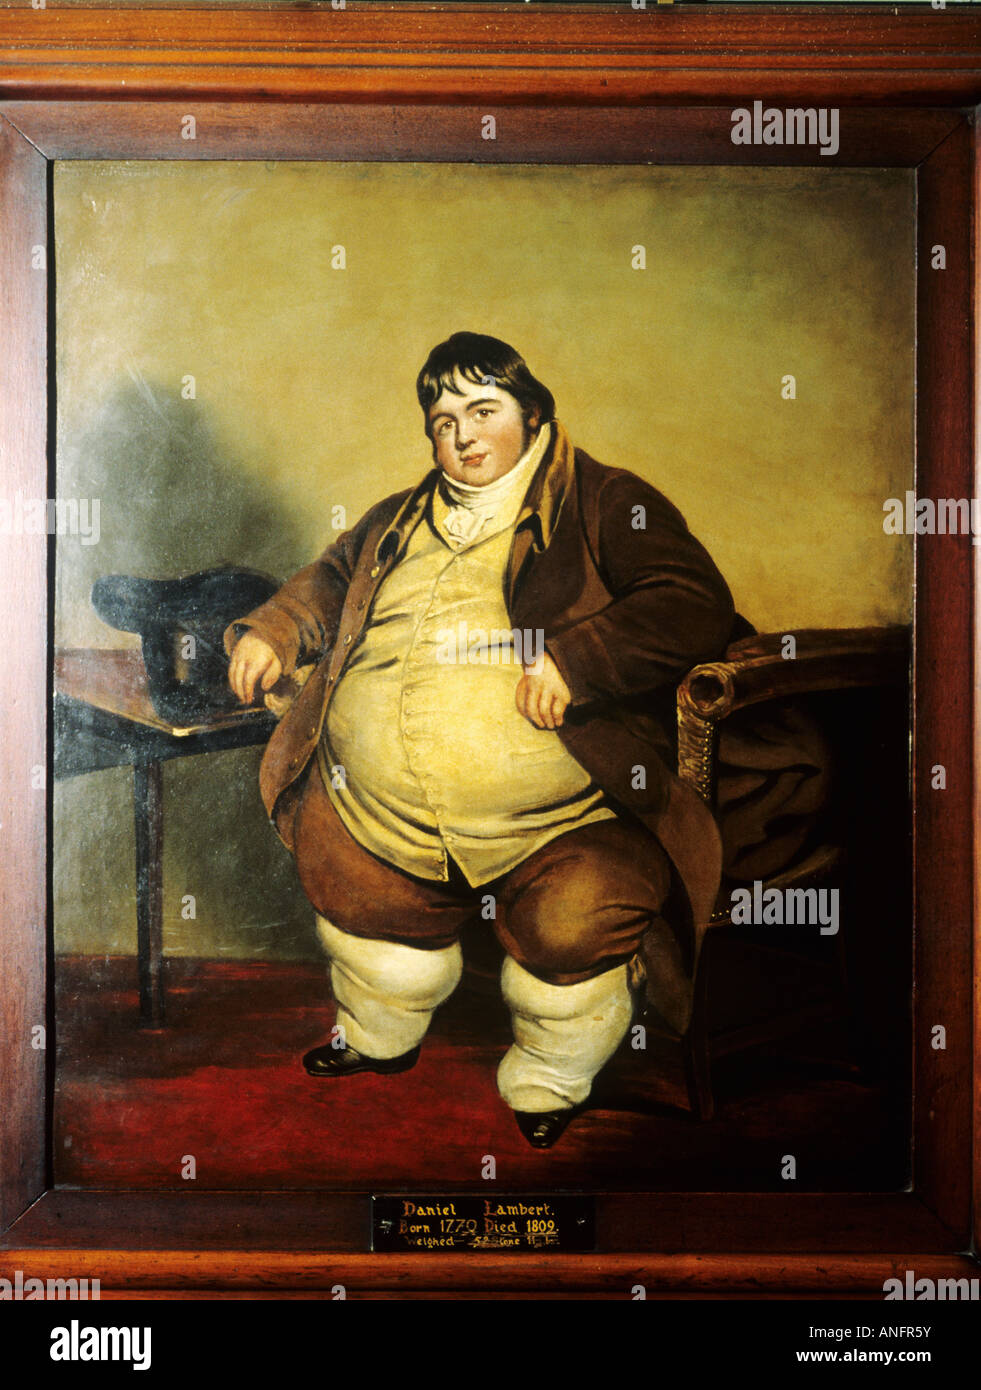 Daniel Lambert famous obese Englishman 18th century weight 52 stones 11 pounds fat obesity celebrated well known - Stock Image